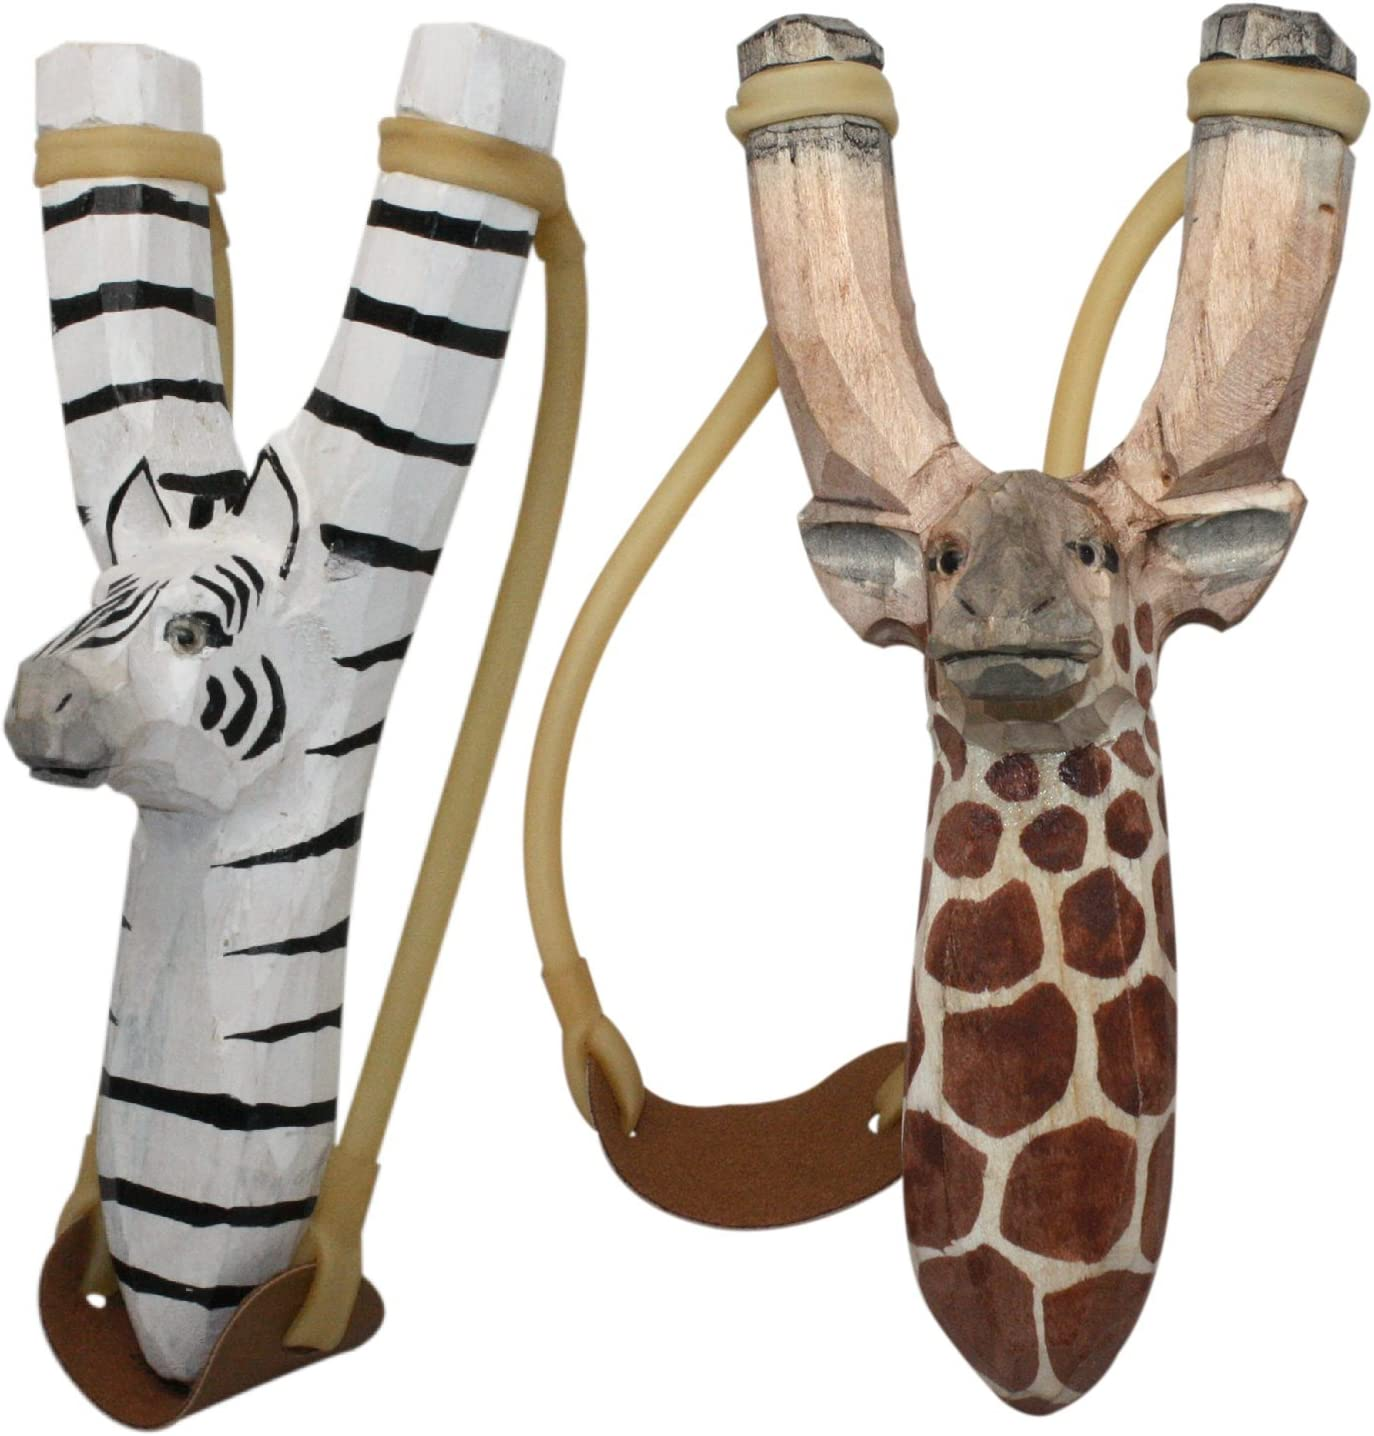 NatureLaunchers Nature LAUNCHERS - Hand-Carved Wooden Slingshot - 2 Pack - Giraffe Zebra